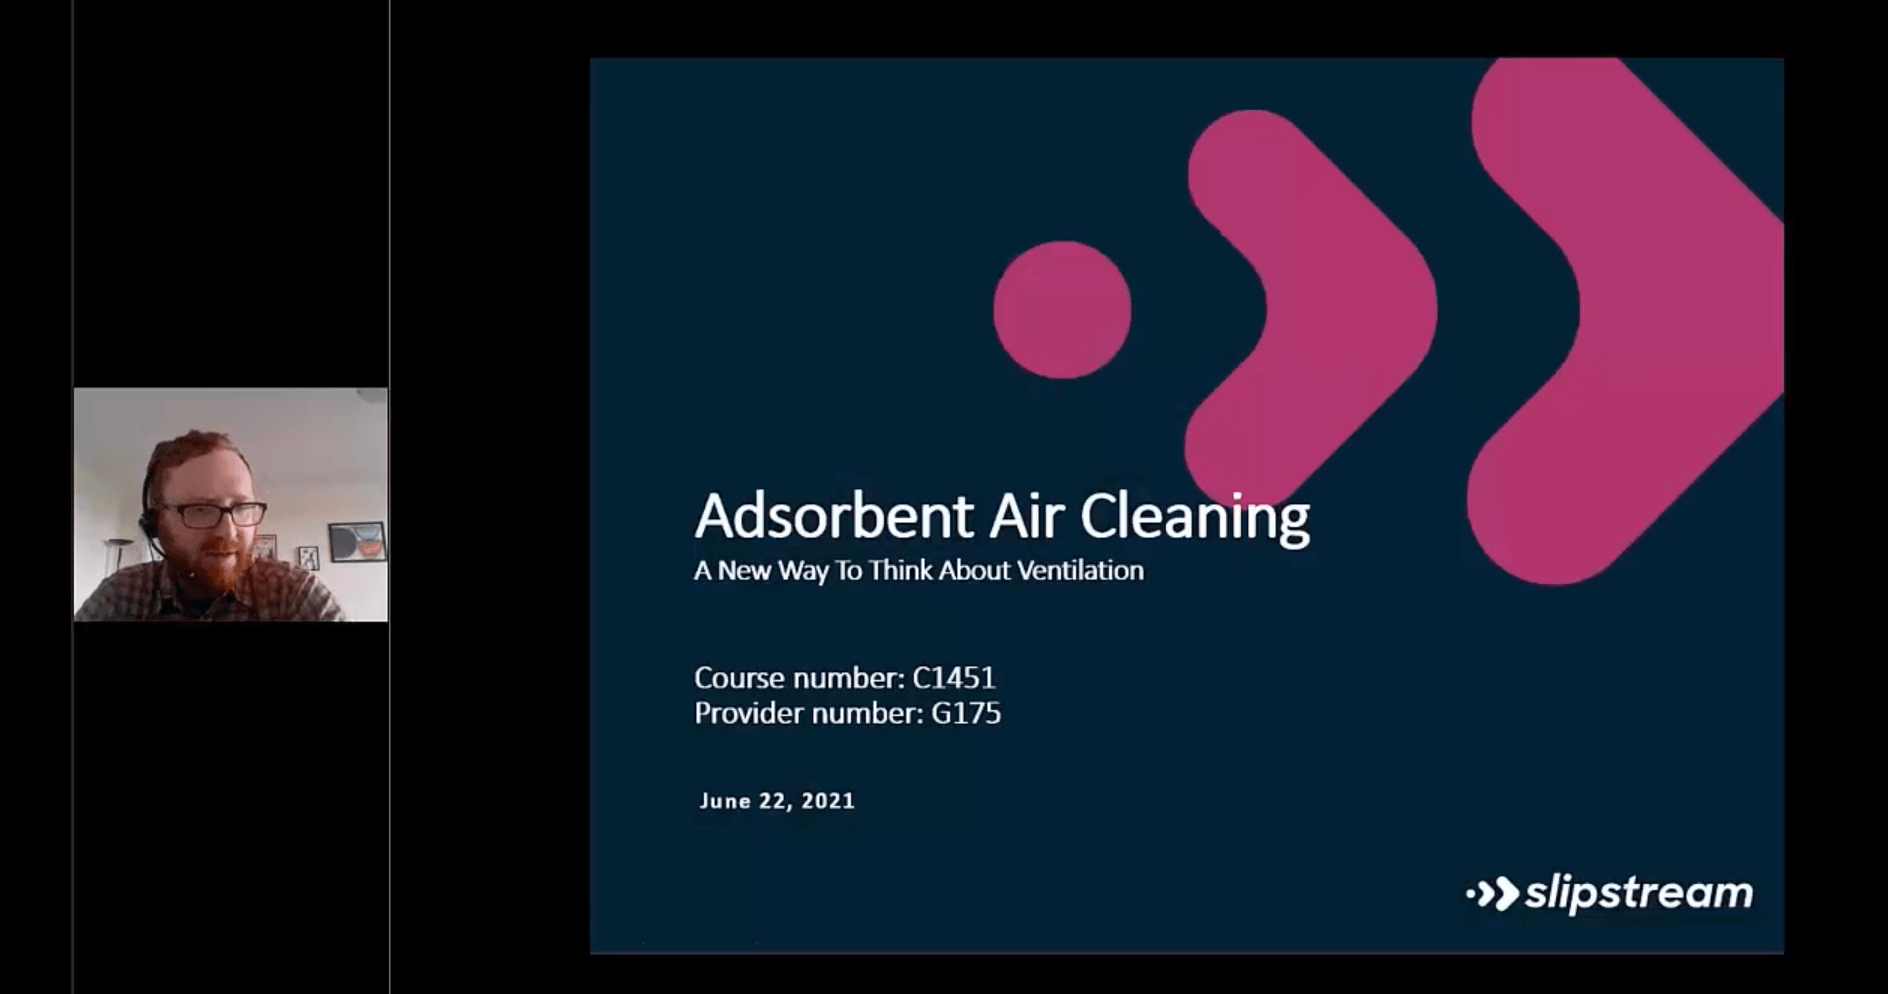 Adsorbent Air Cleaning: A New Way to Think About Ventilation (Slipstream webinar)